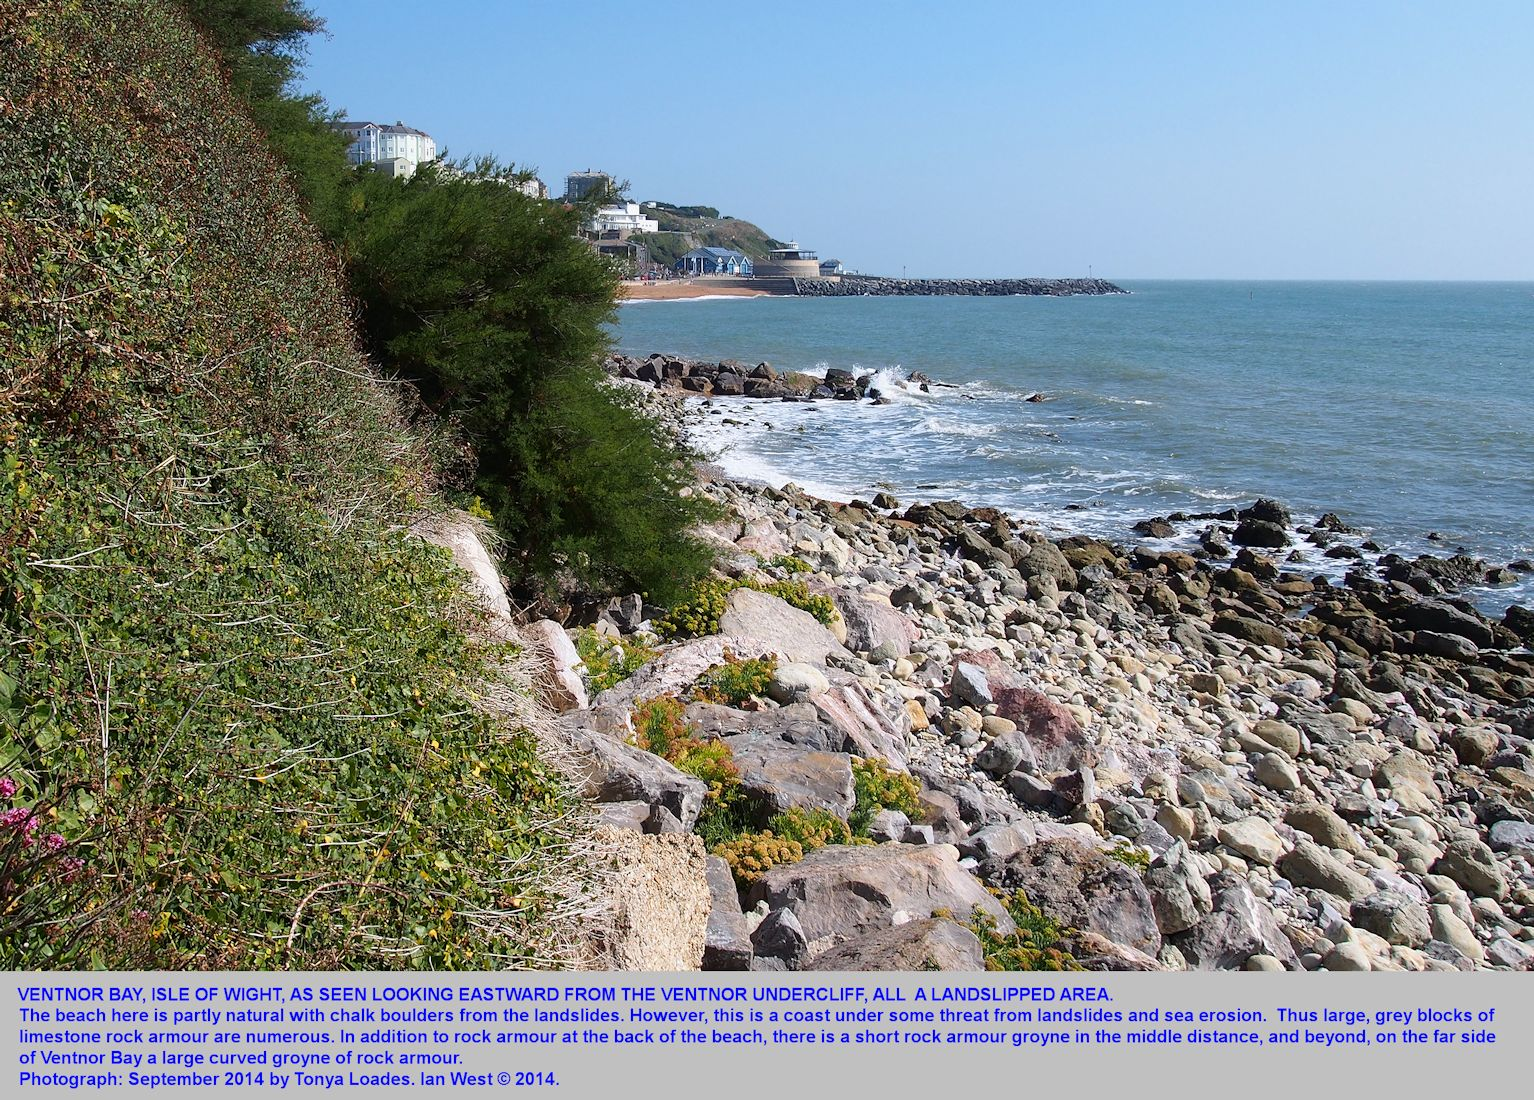 An eastward view across Ventnor Bay, Isle of Wight, with landslip rock debris in the foreground and artificial, rock armour groynes beyond